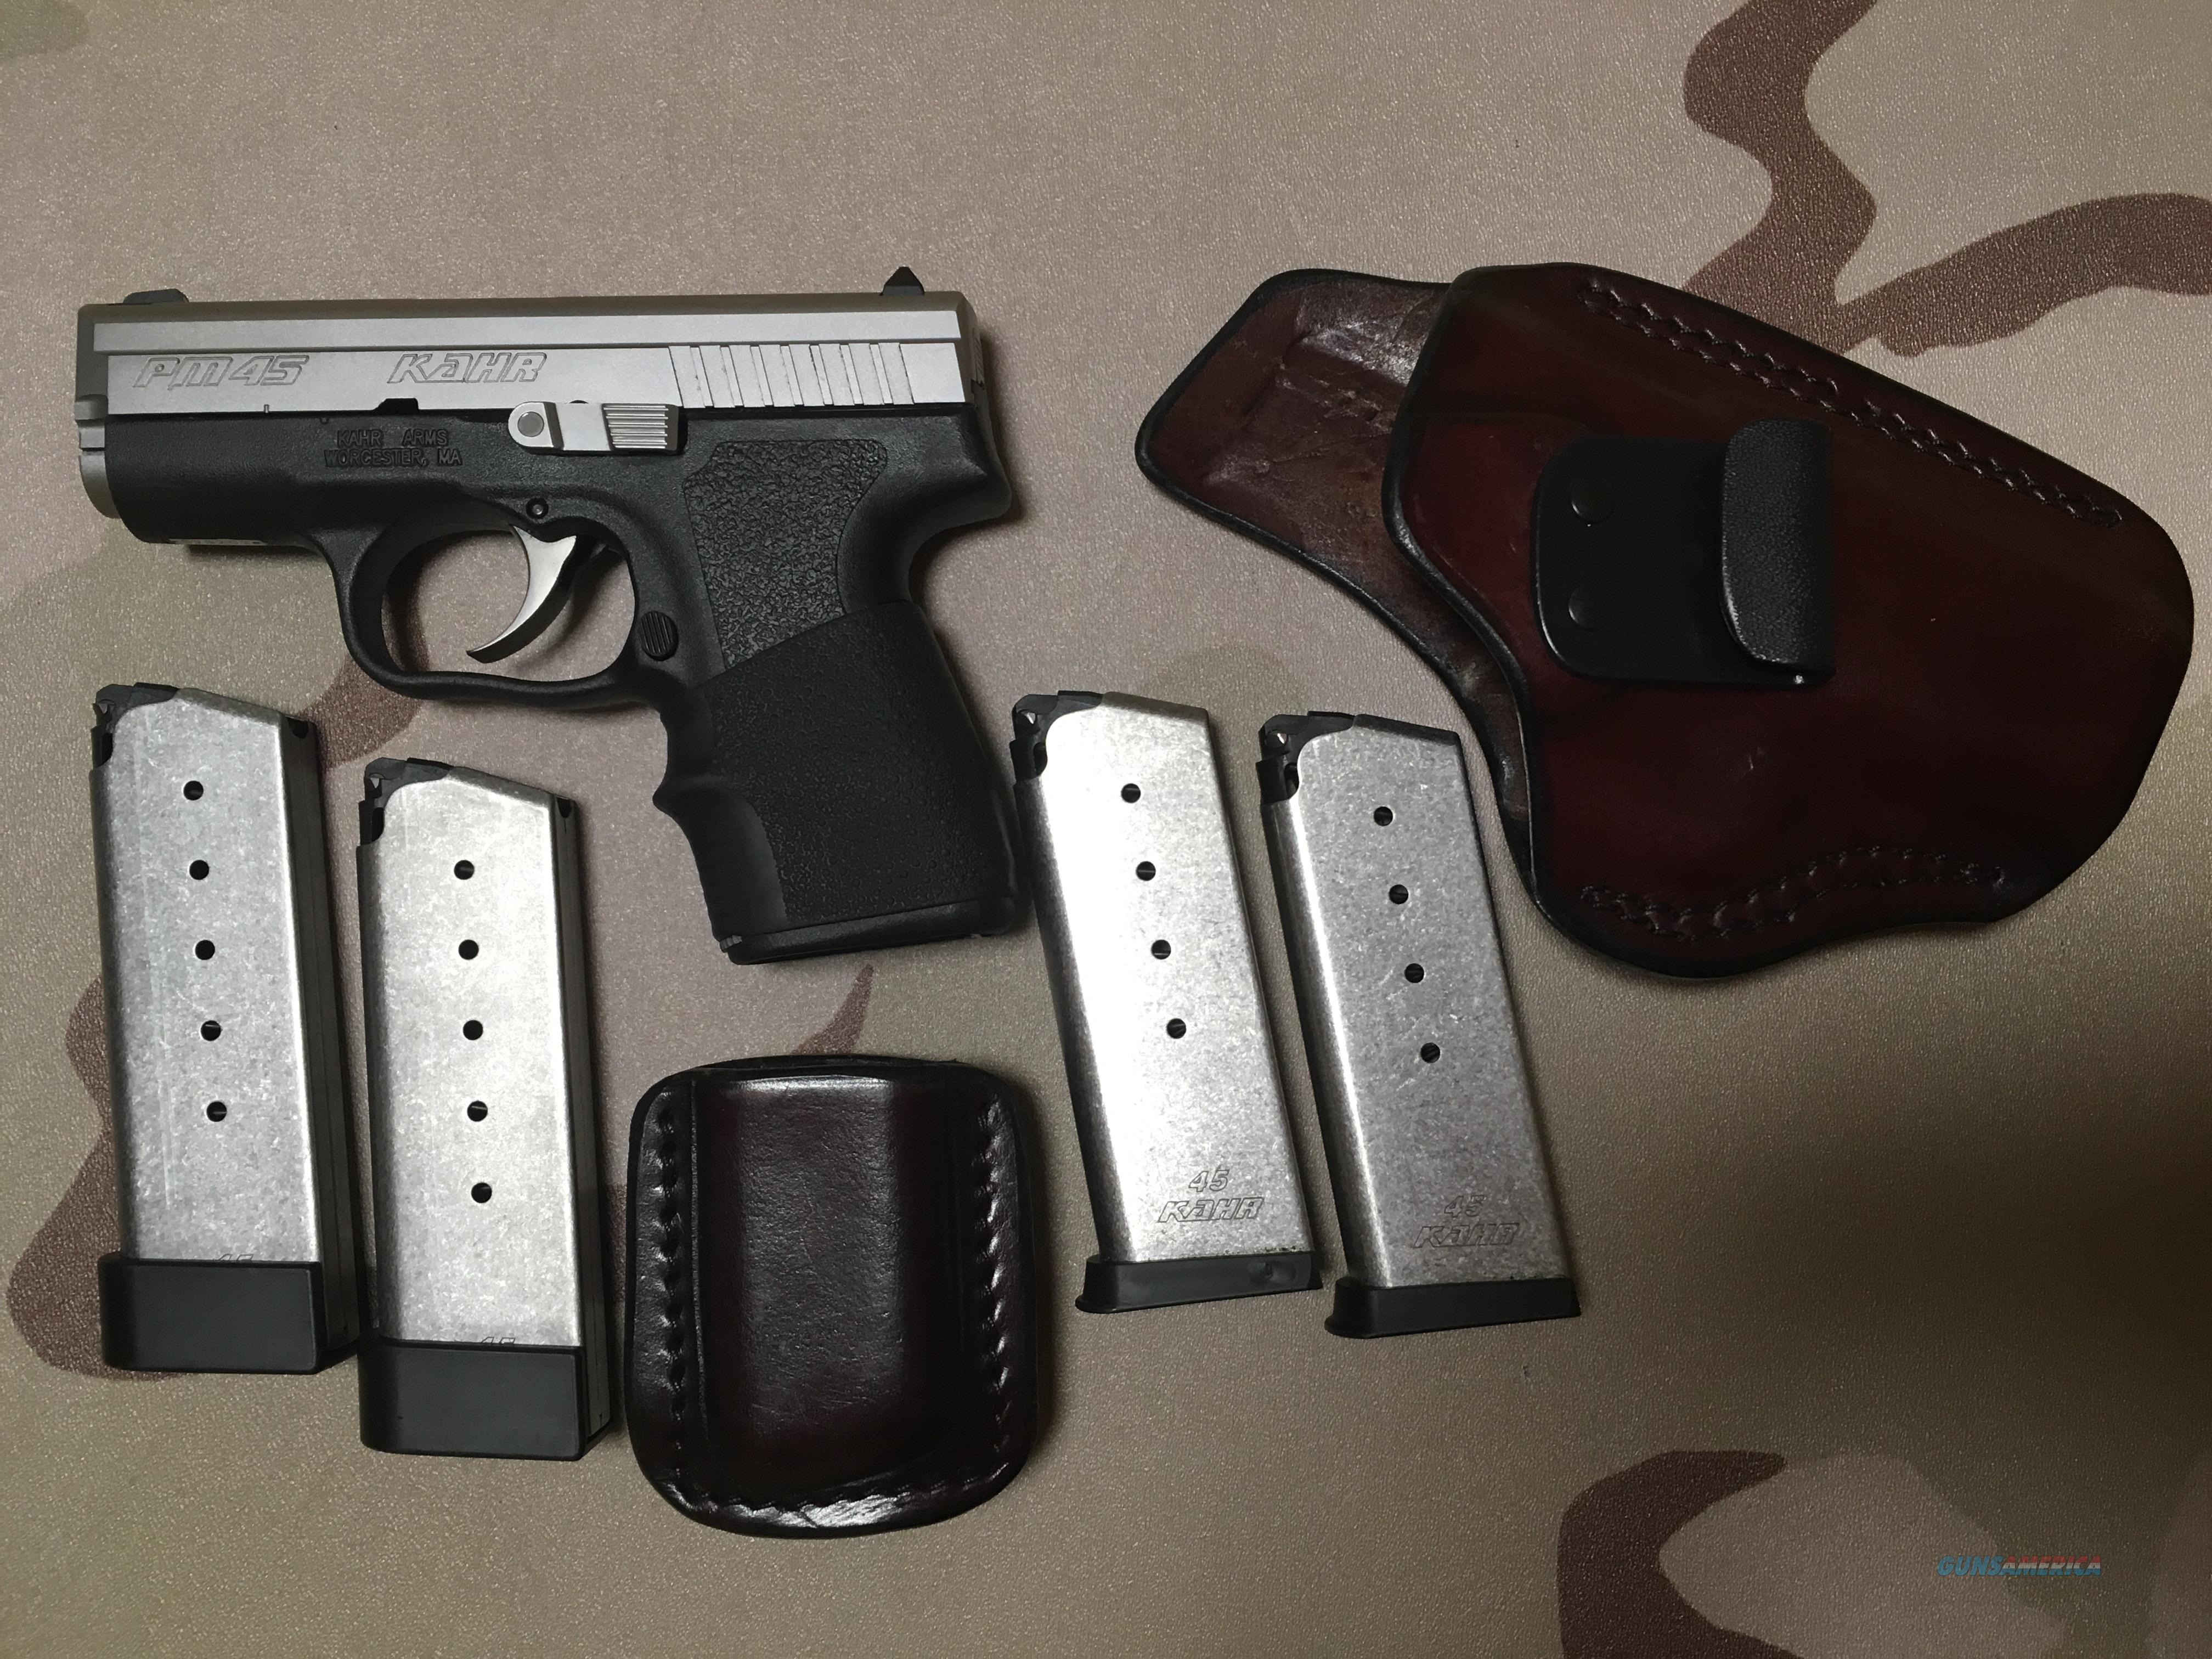 Kahr PM45 Two Tone with FIST, Inc IWB Leather Holster, 4 Mags, Mag Pouch, Box  Guns > Pistols > Kahr Pistols